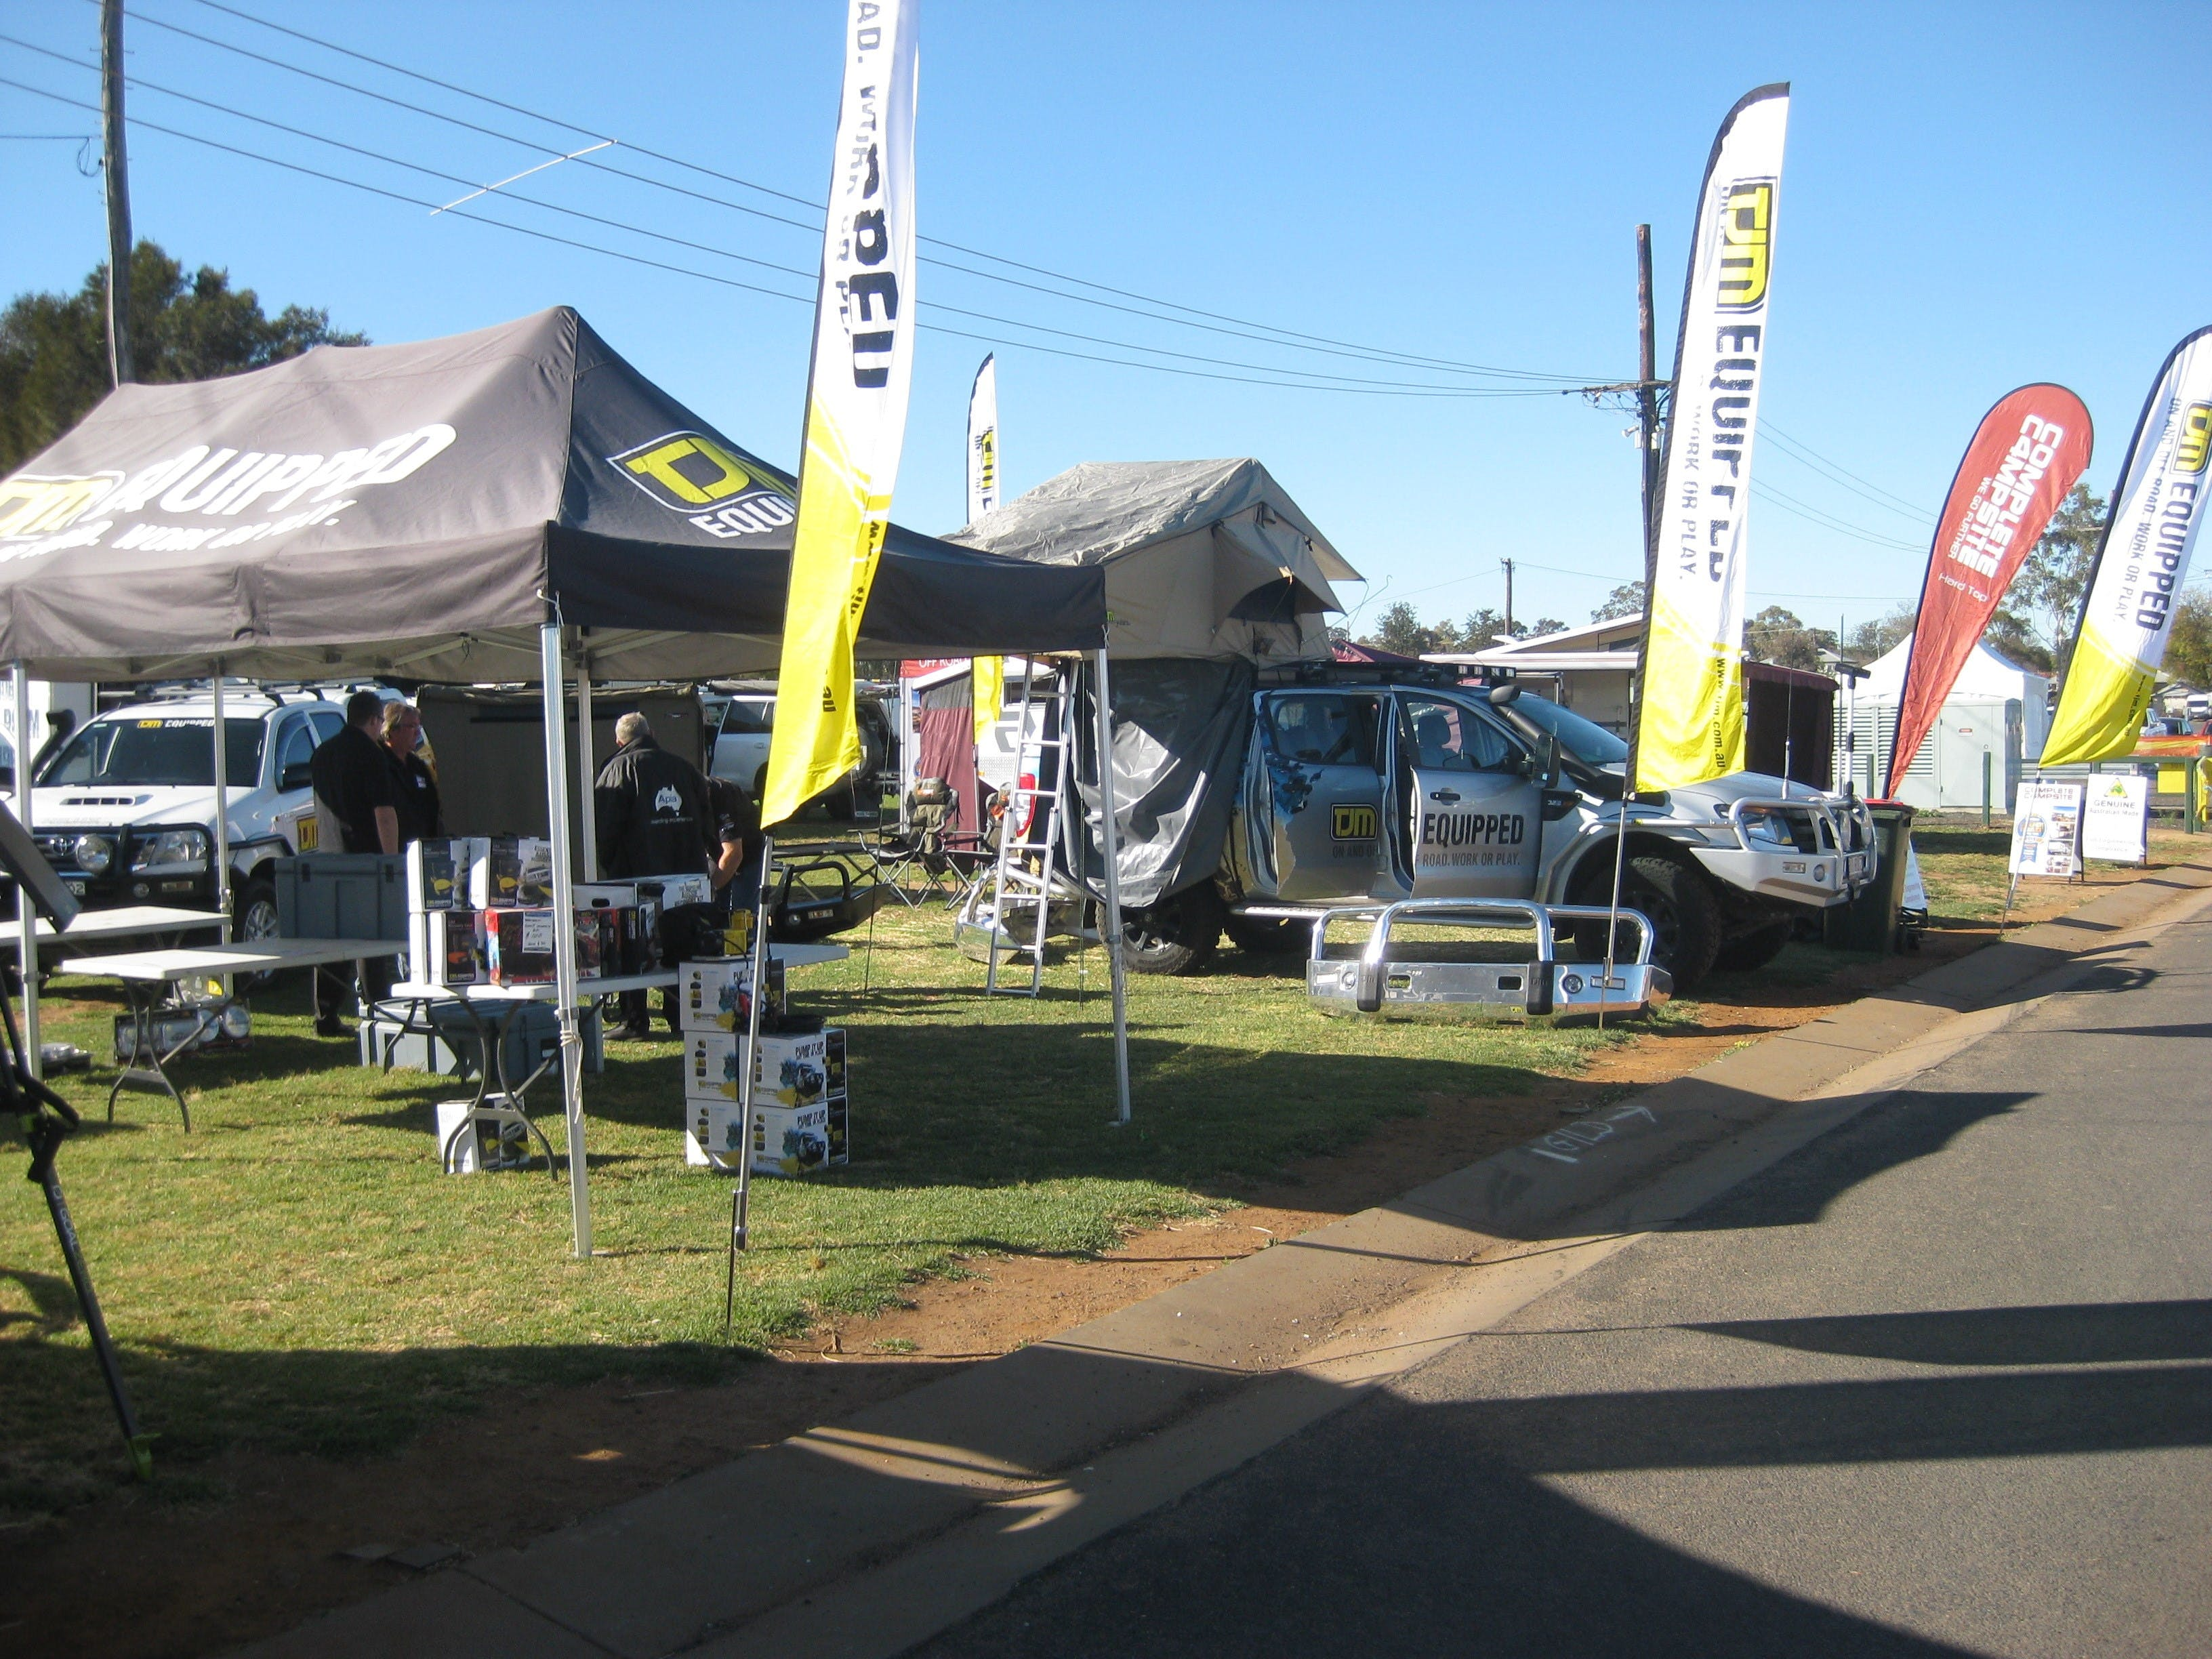 Orana Caravan Camping 4WD Fish and Boat Show - Lightning Ridge Tourism